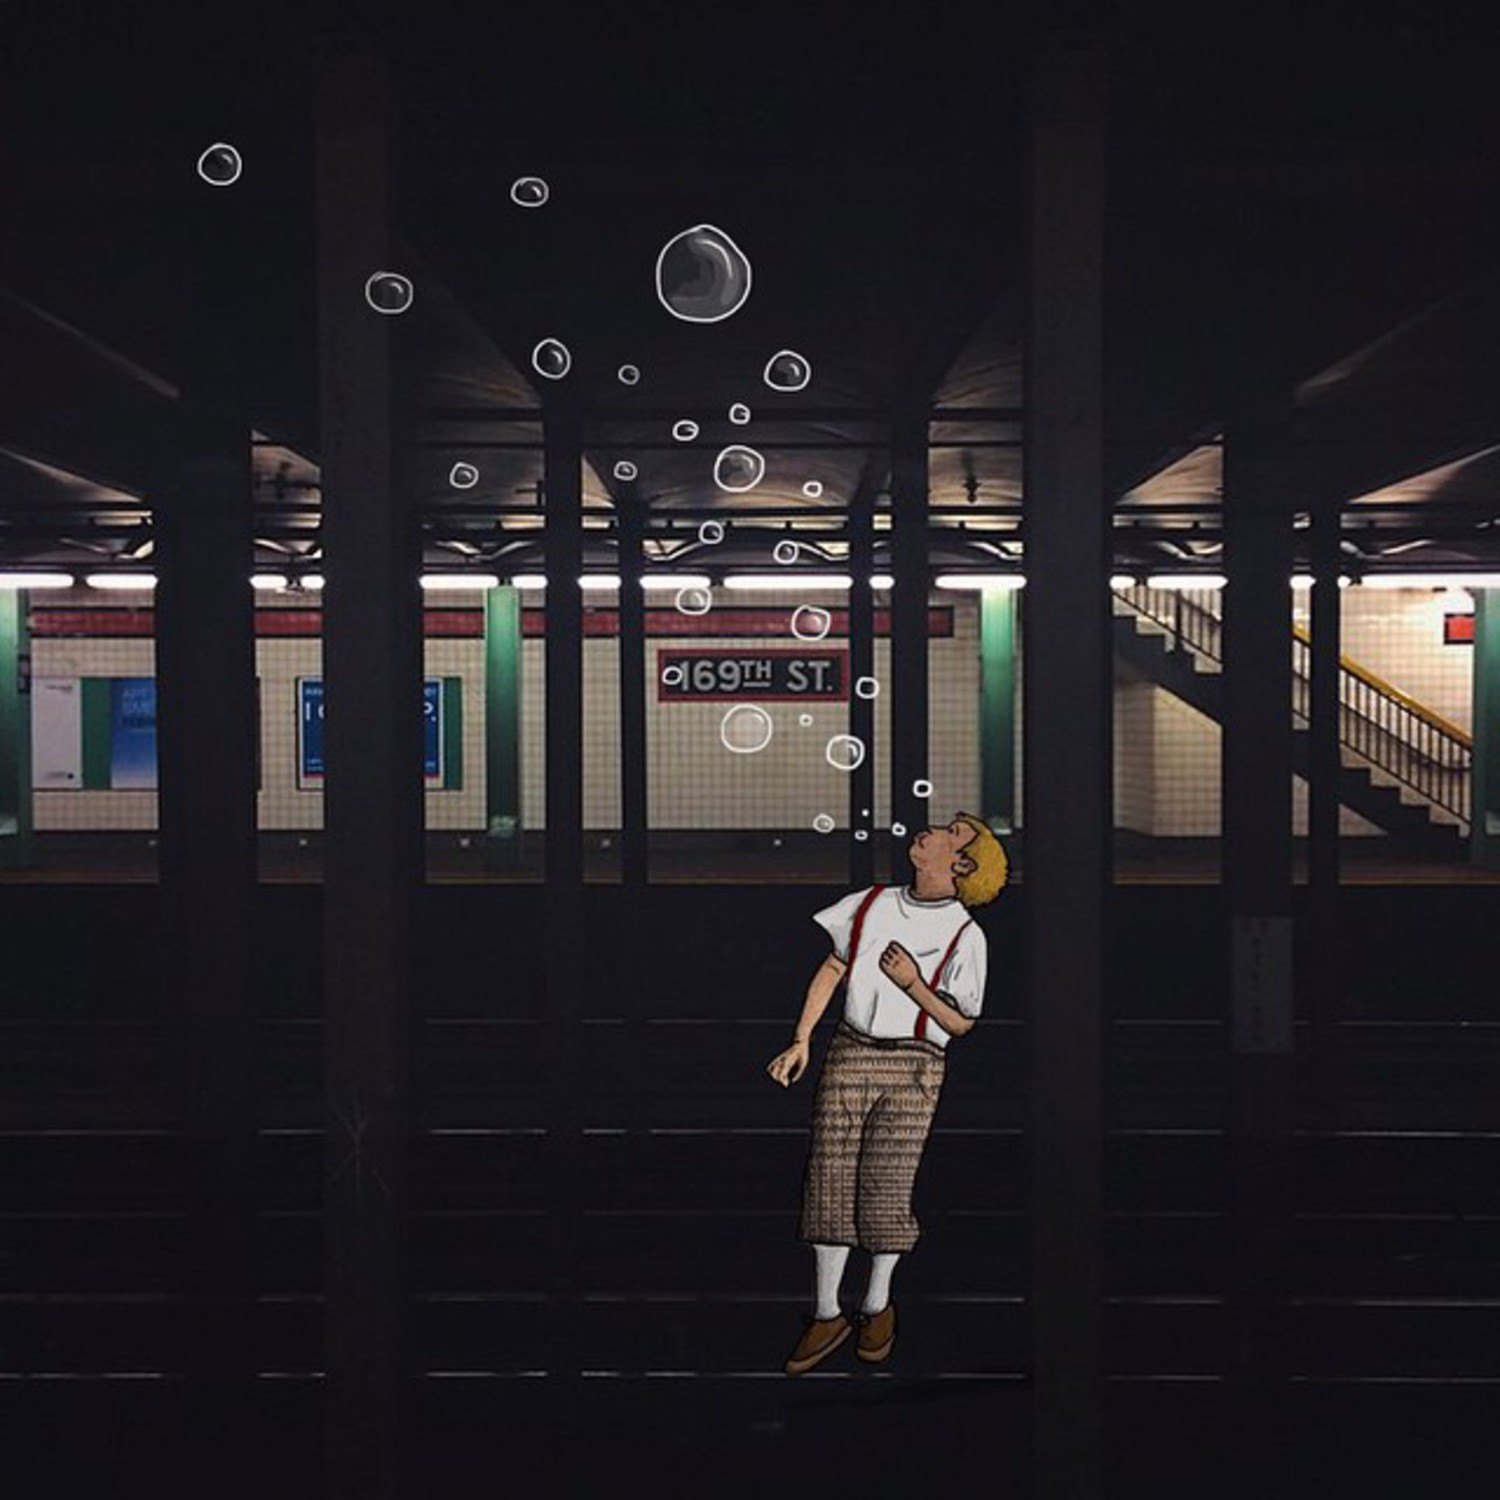 Bubble show on 169th street  The subway shot by who else than @underground_nyc check this fella !